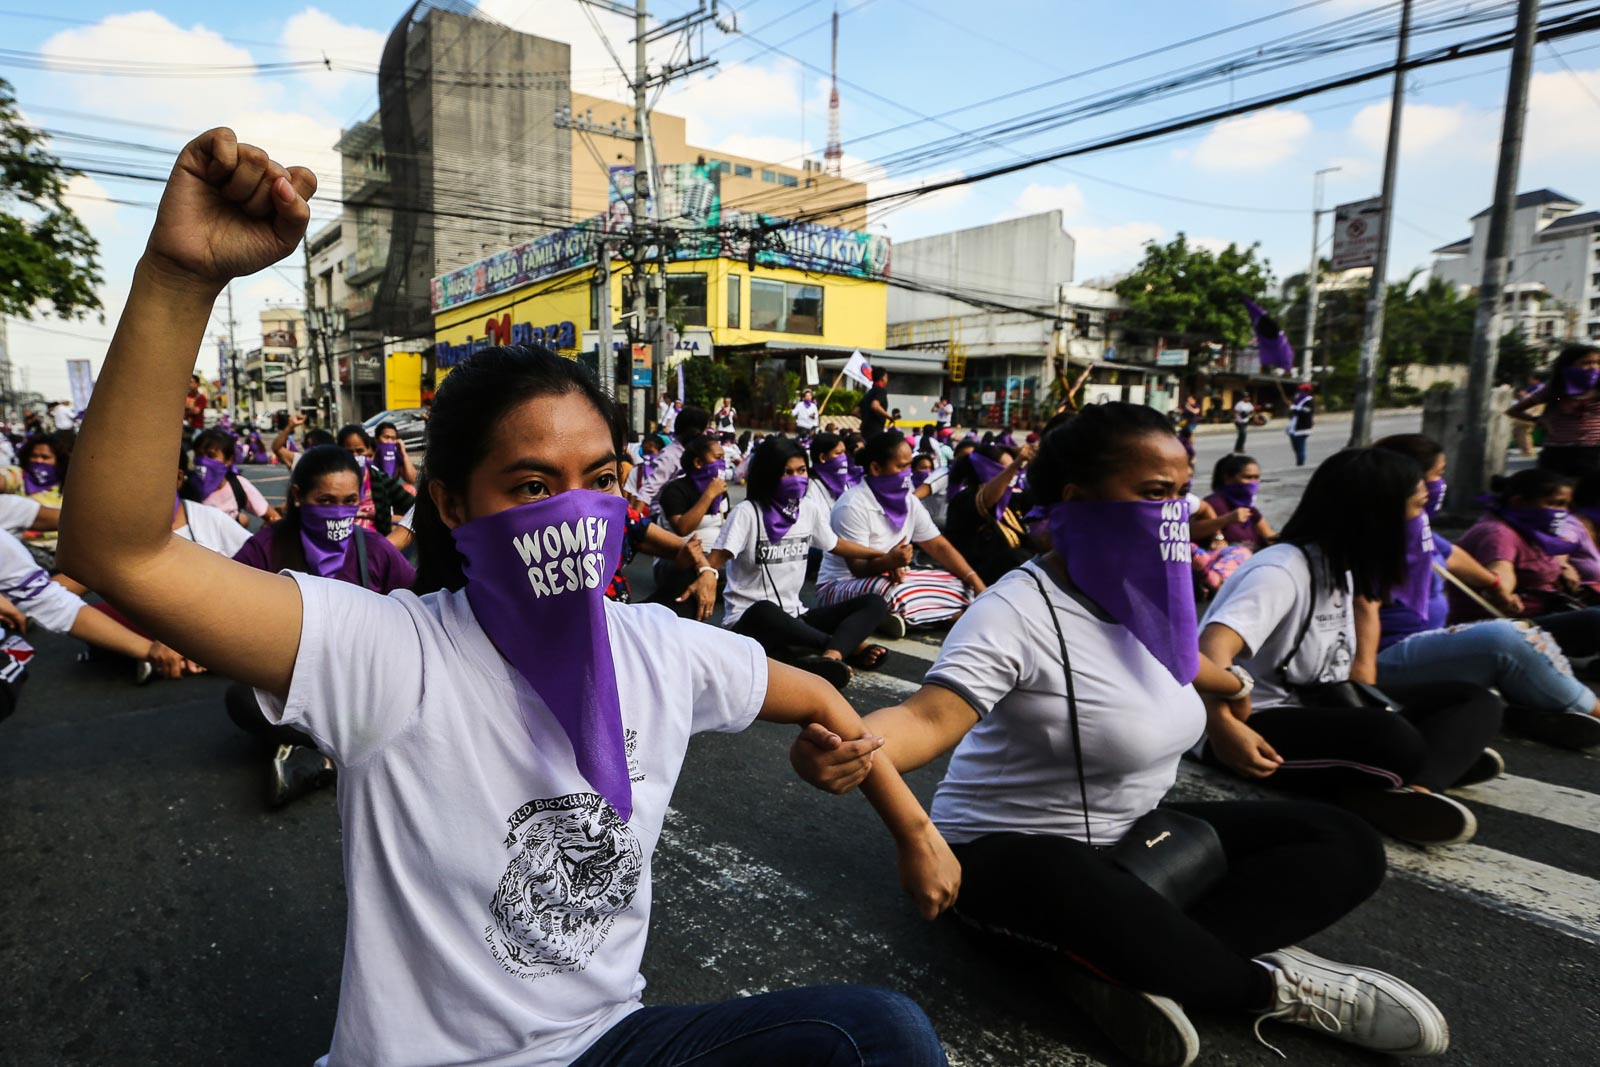 BLOCKING STREETS TO FIGHT FOR RIGHTS. The theme of the protest u0022women occupy spaceu0022 the symbolic action aims to raise the call to block the passge of the anti terrorism bill or EO 70 in the Senate. Photo by Jire Carreon/Rappler